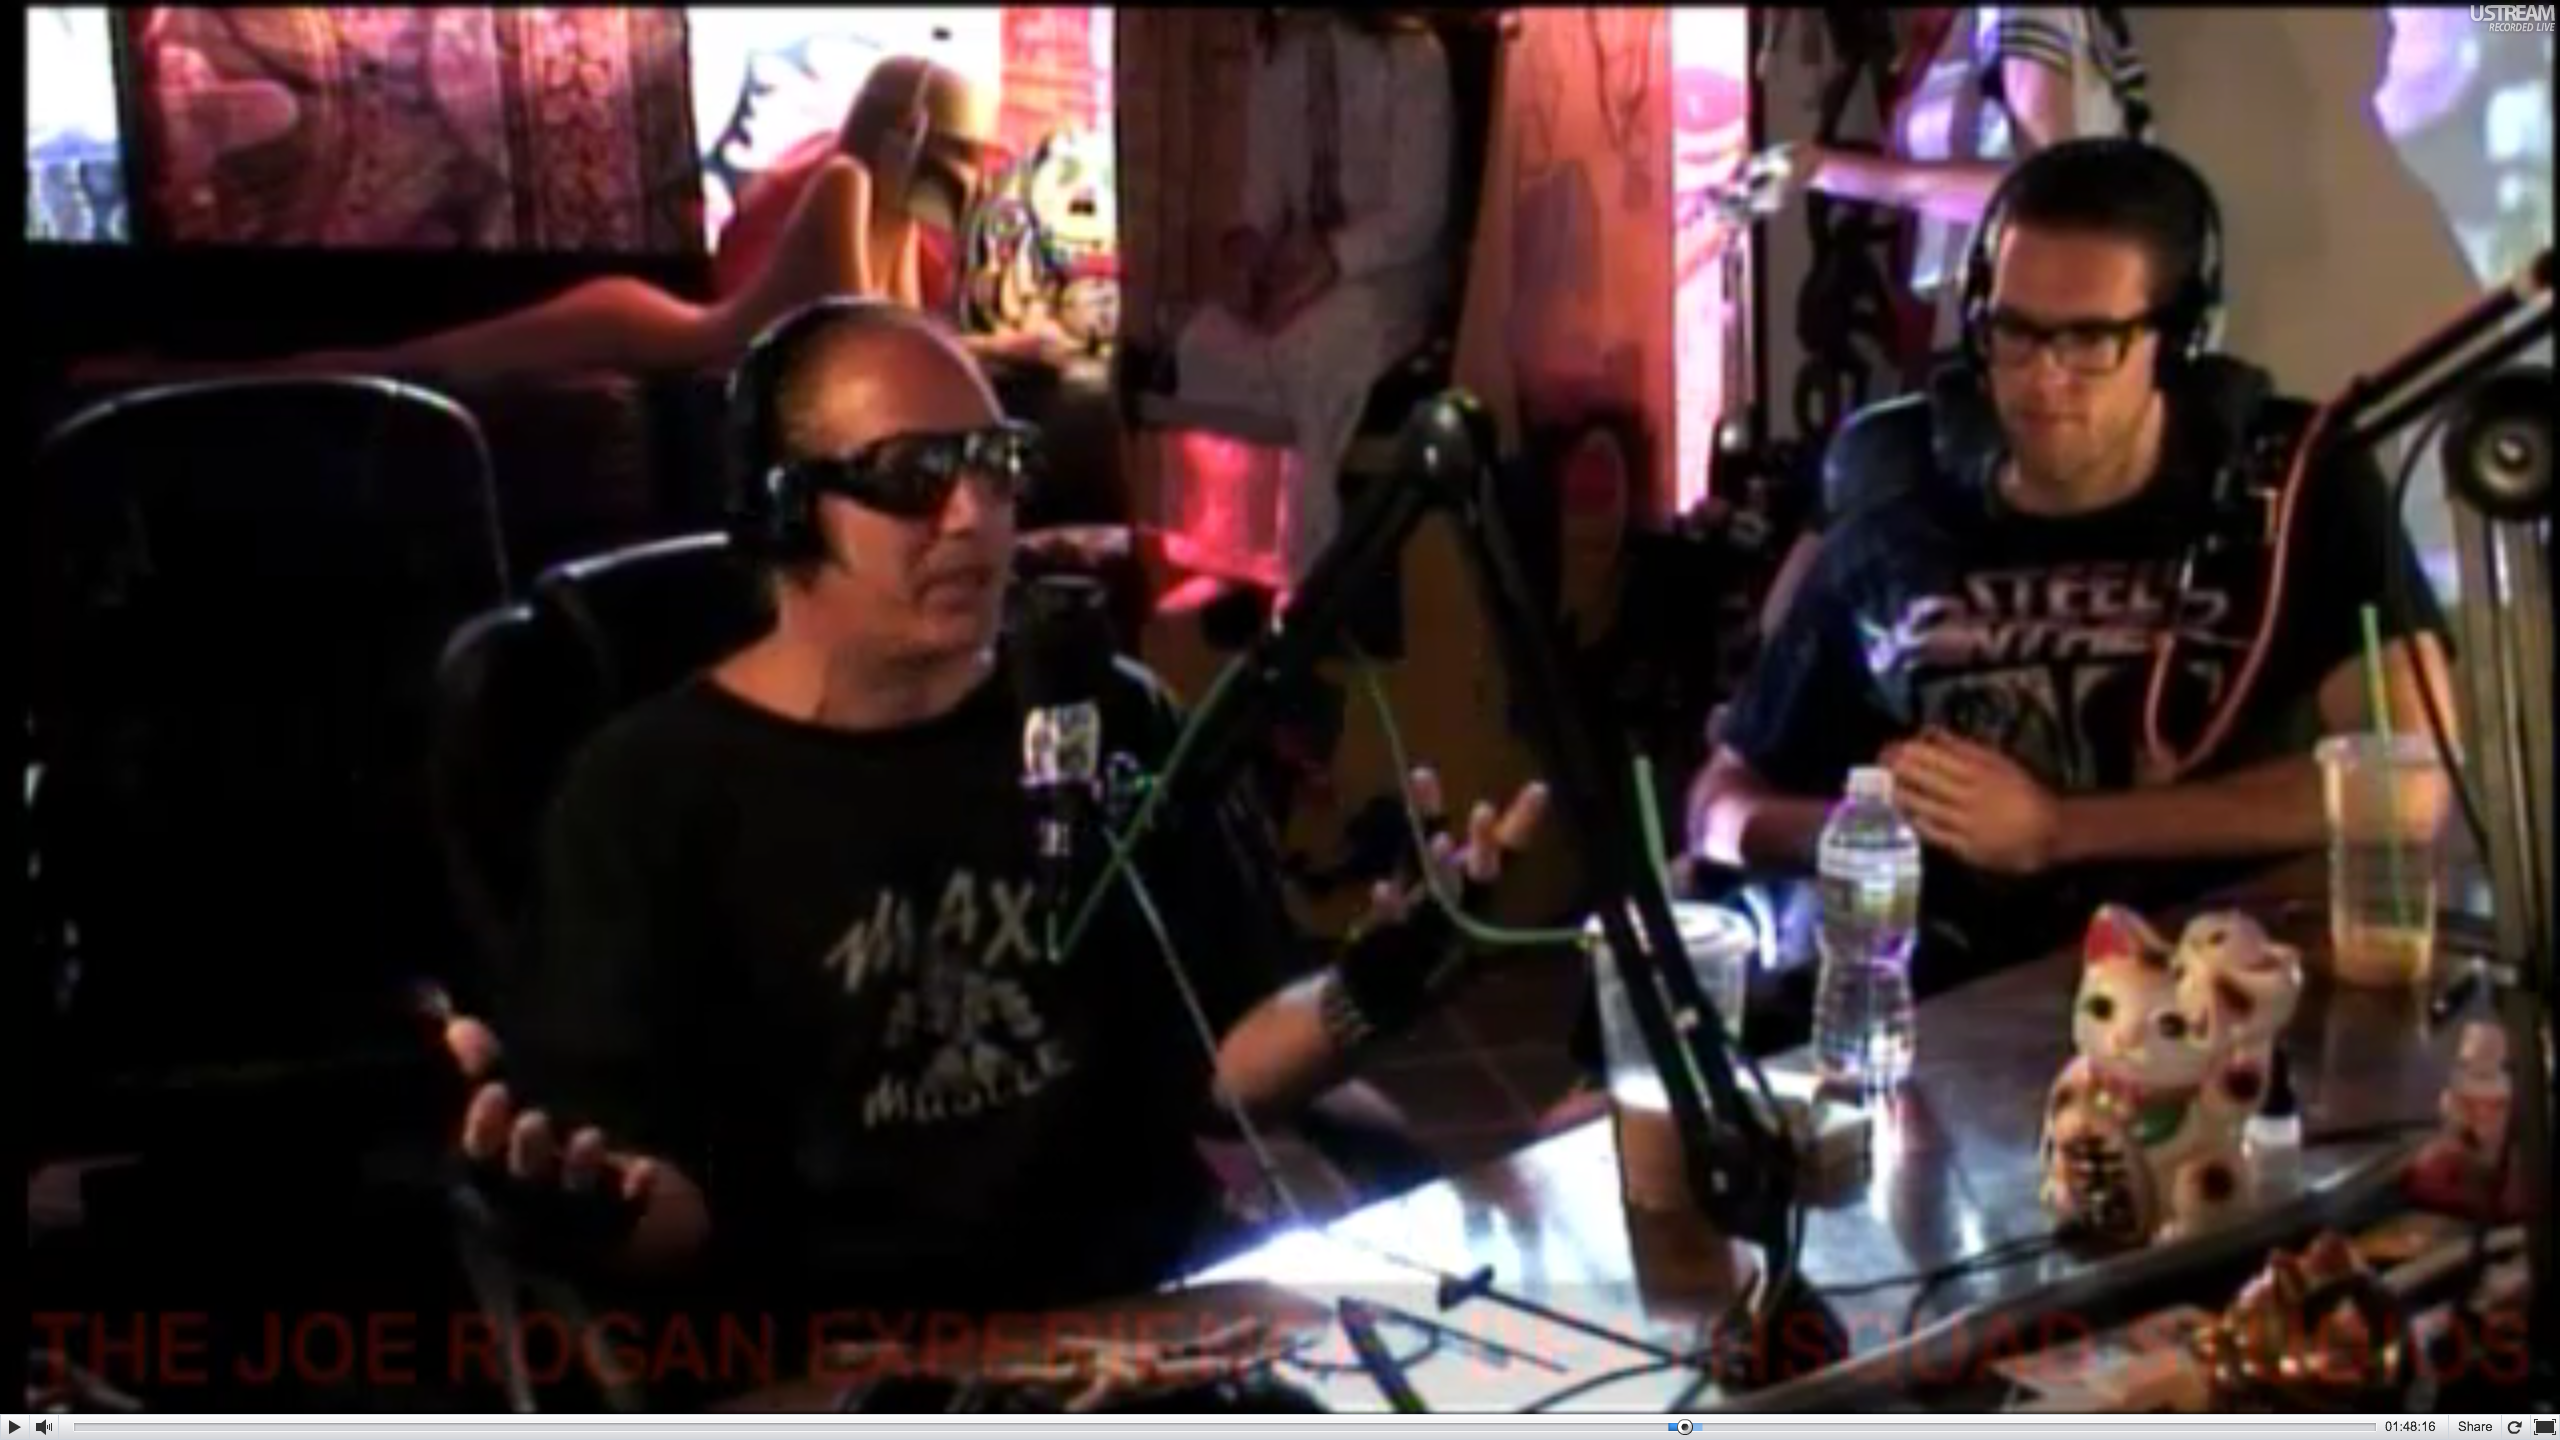 The Joe Rogan Experience #215 - Andrew Dice Clay, Max Silverstein, Brian Redban